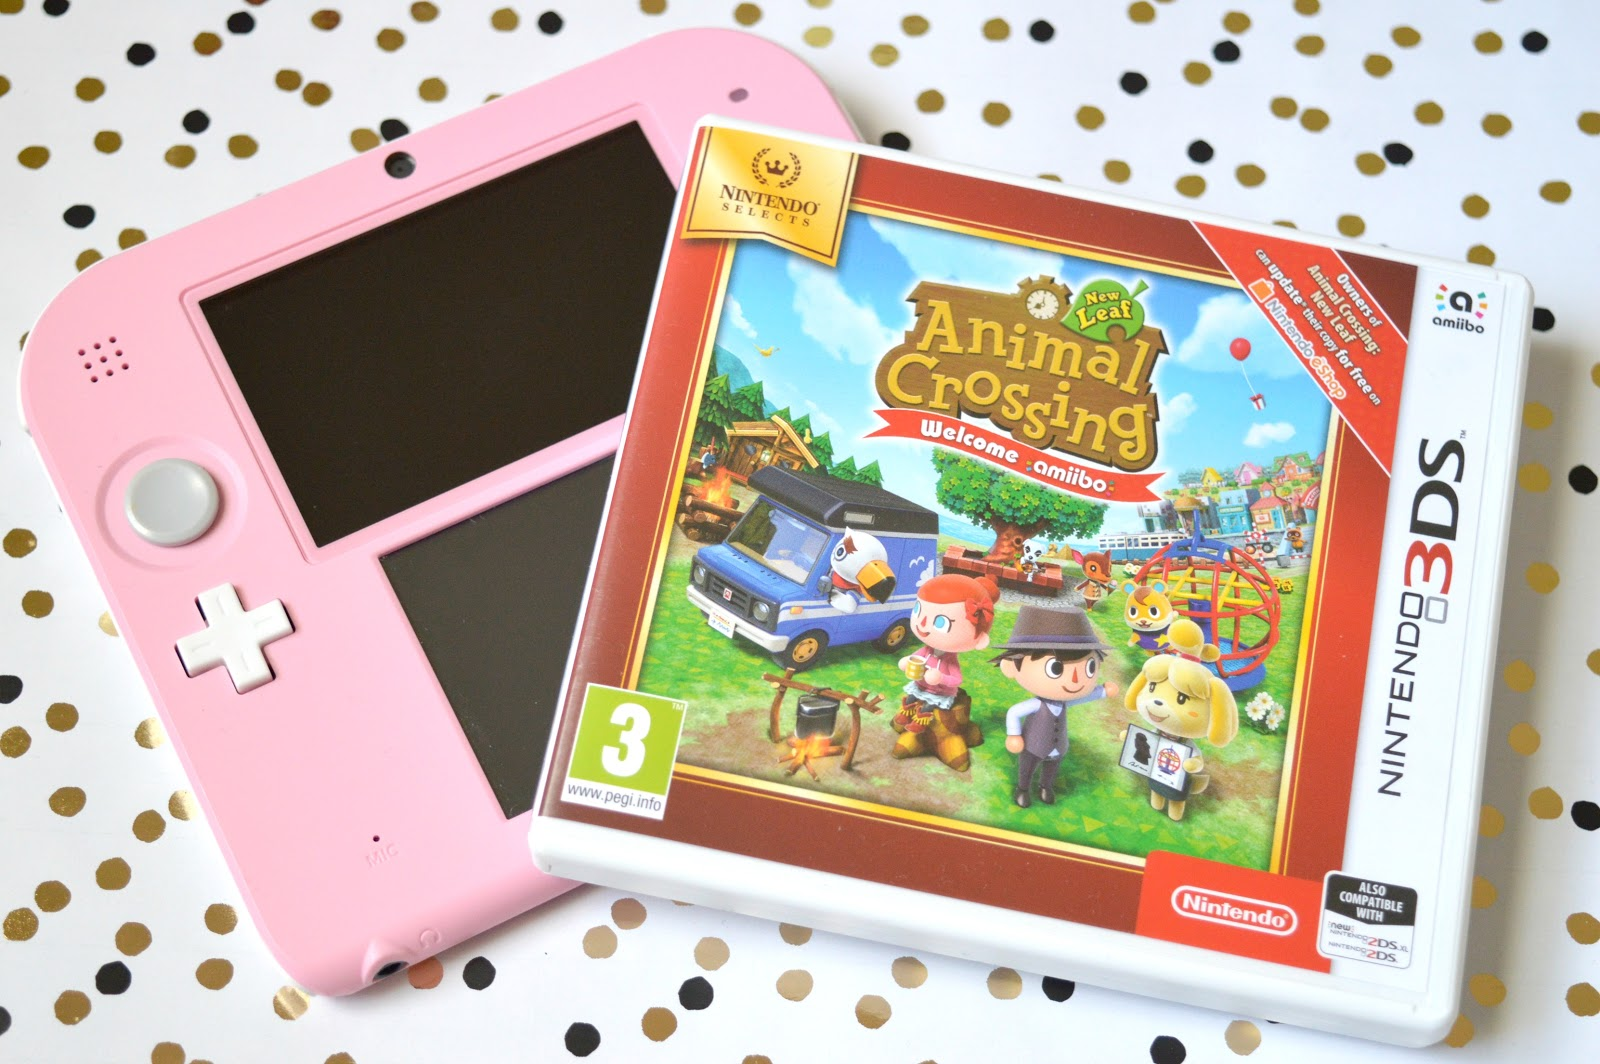 Animal Crossing New Leaf for Nintendo 3DS with a pretty pink Nintendo 2DS console